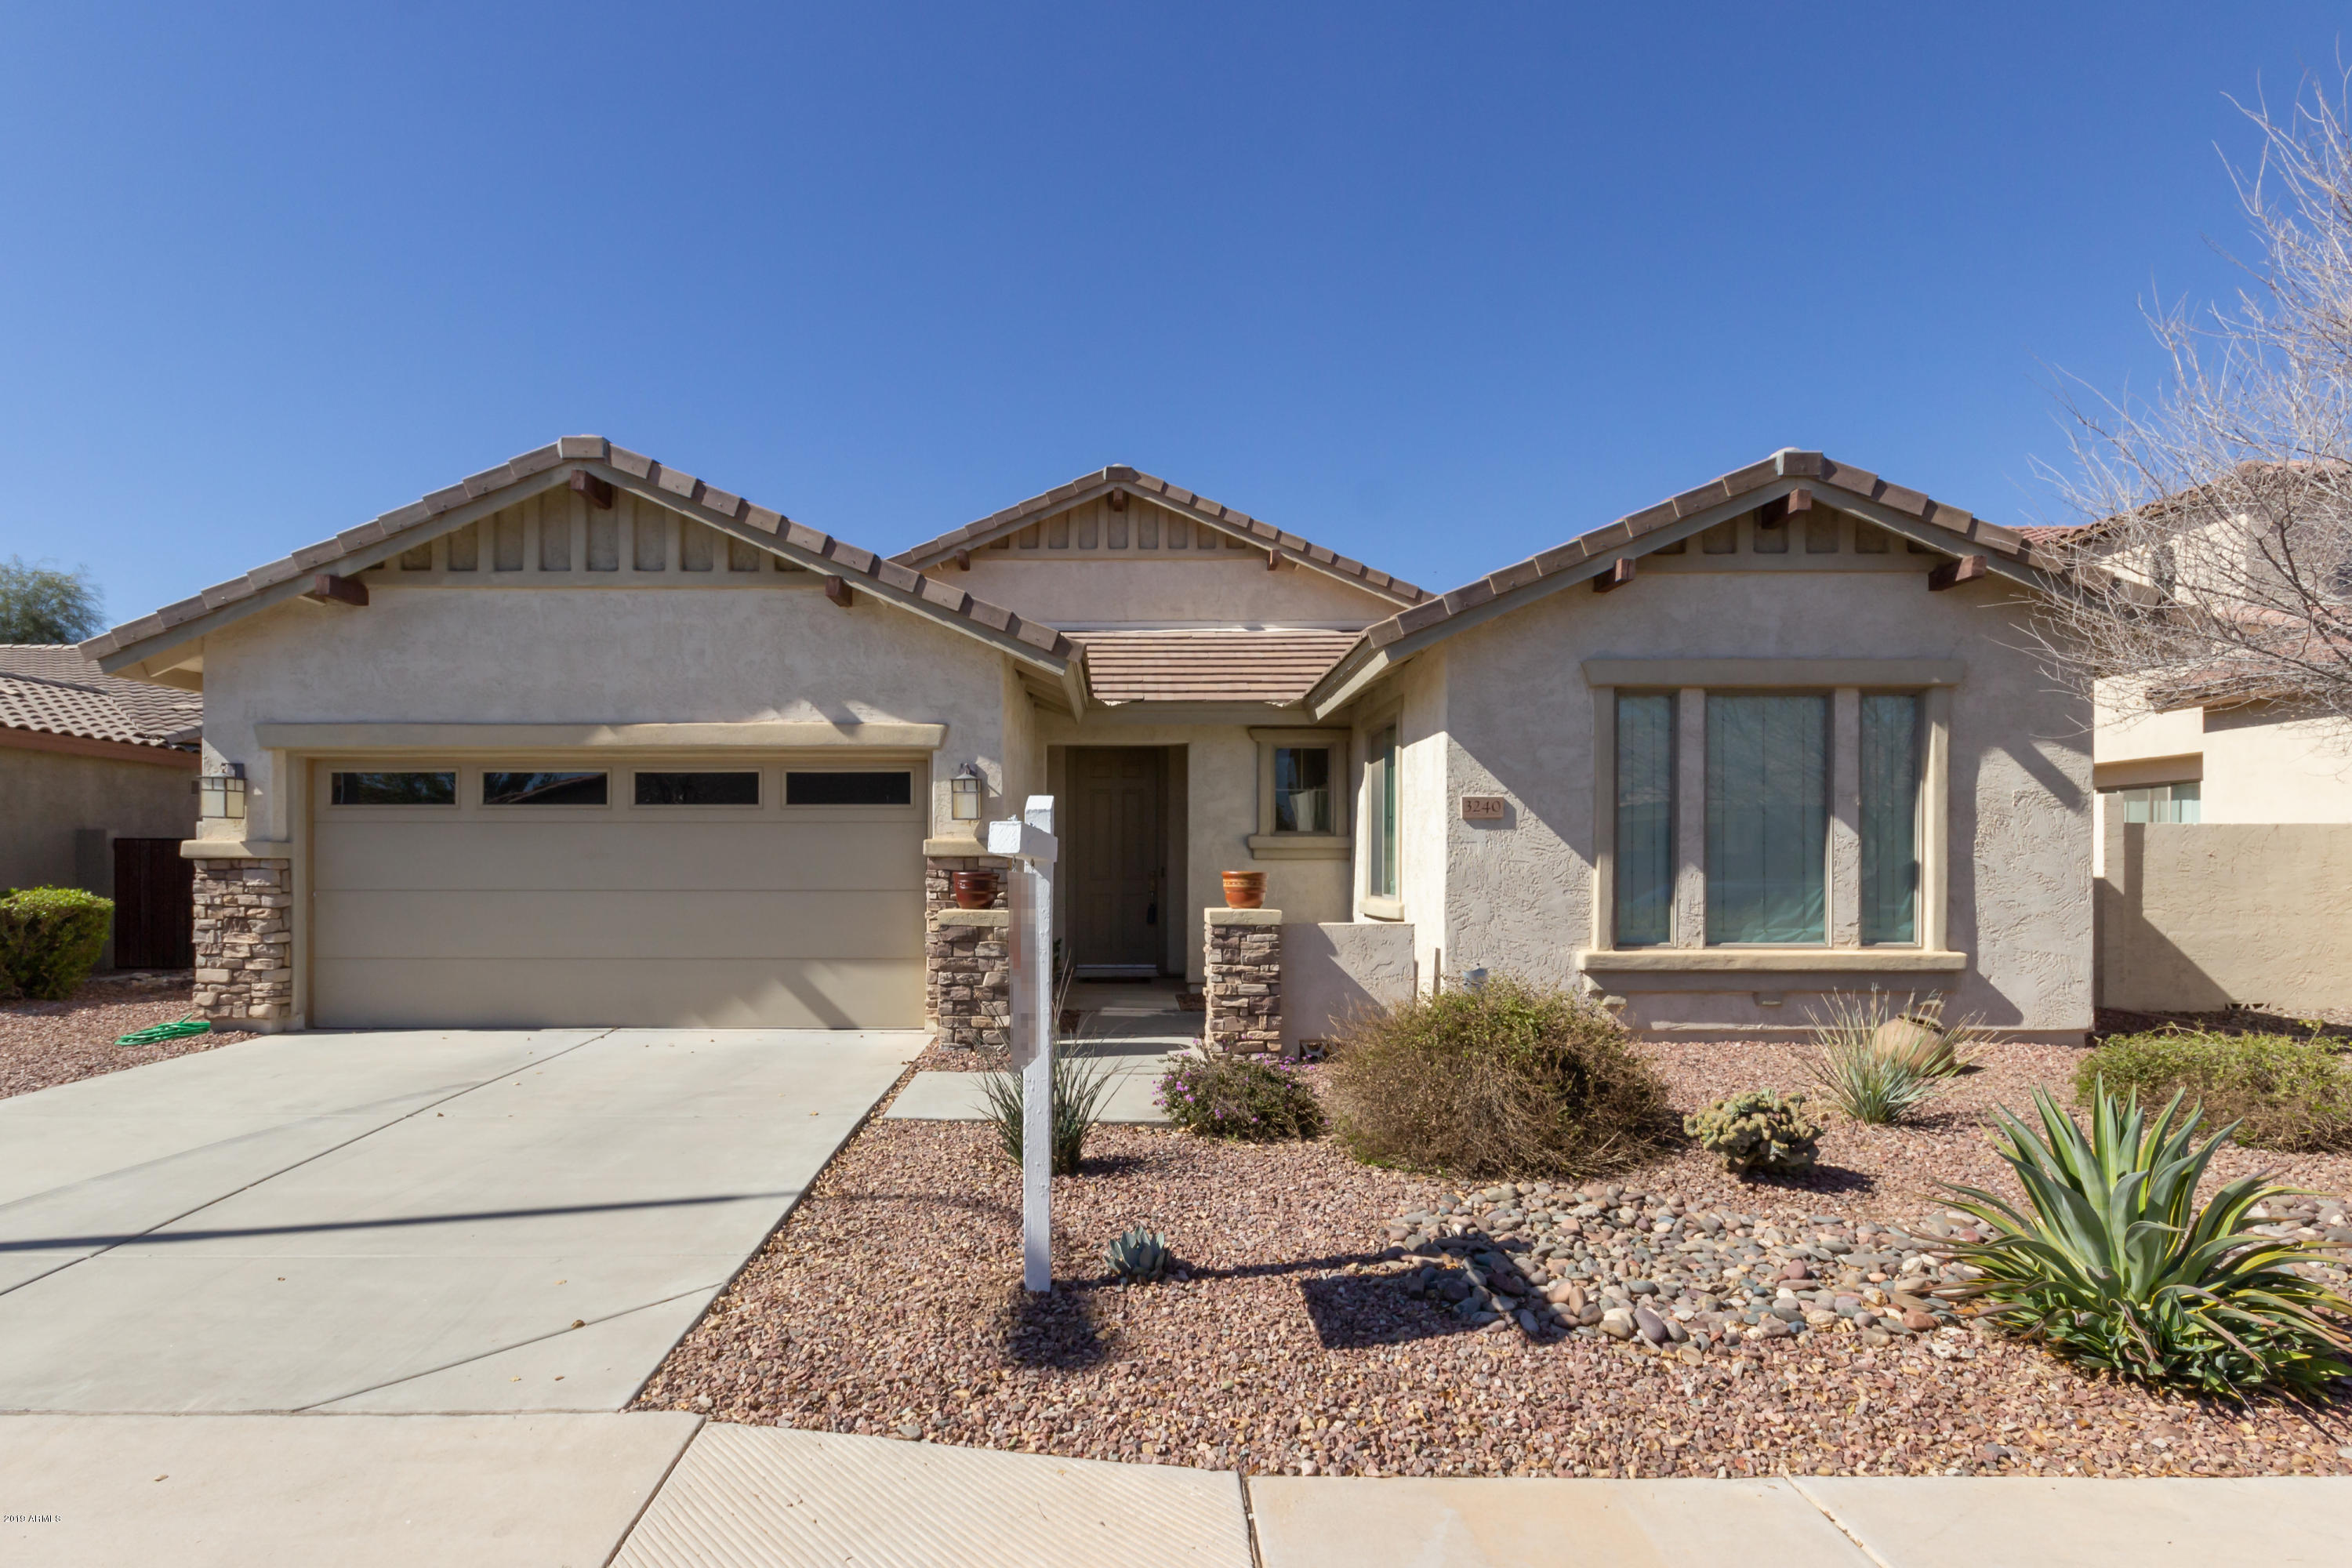 Photo of 3240 S HOLGUIN Way, Chandler, AZ 85248